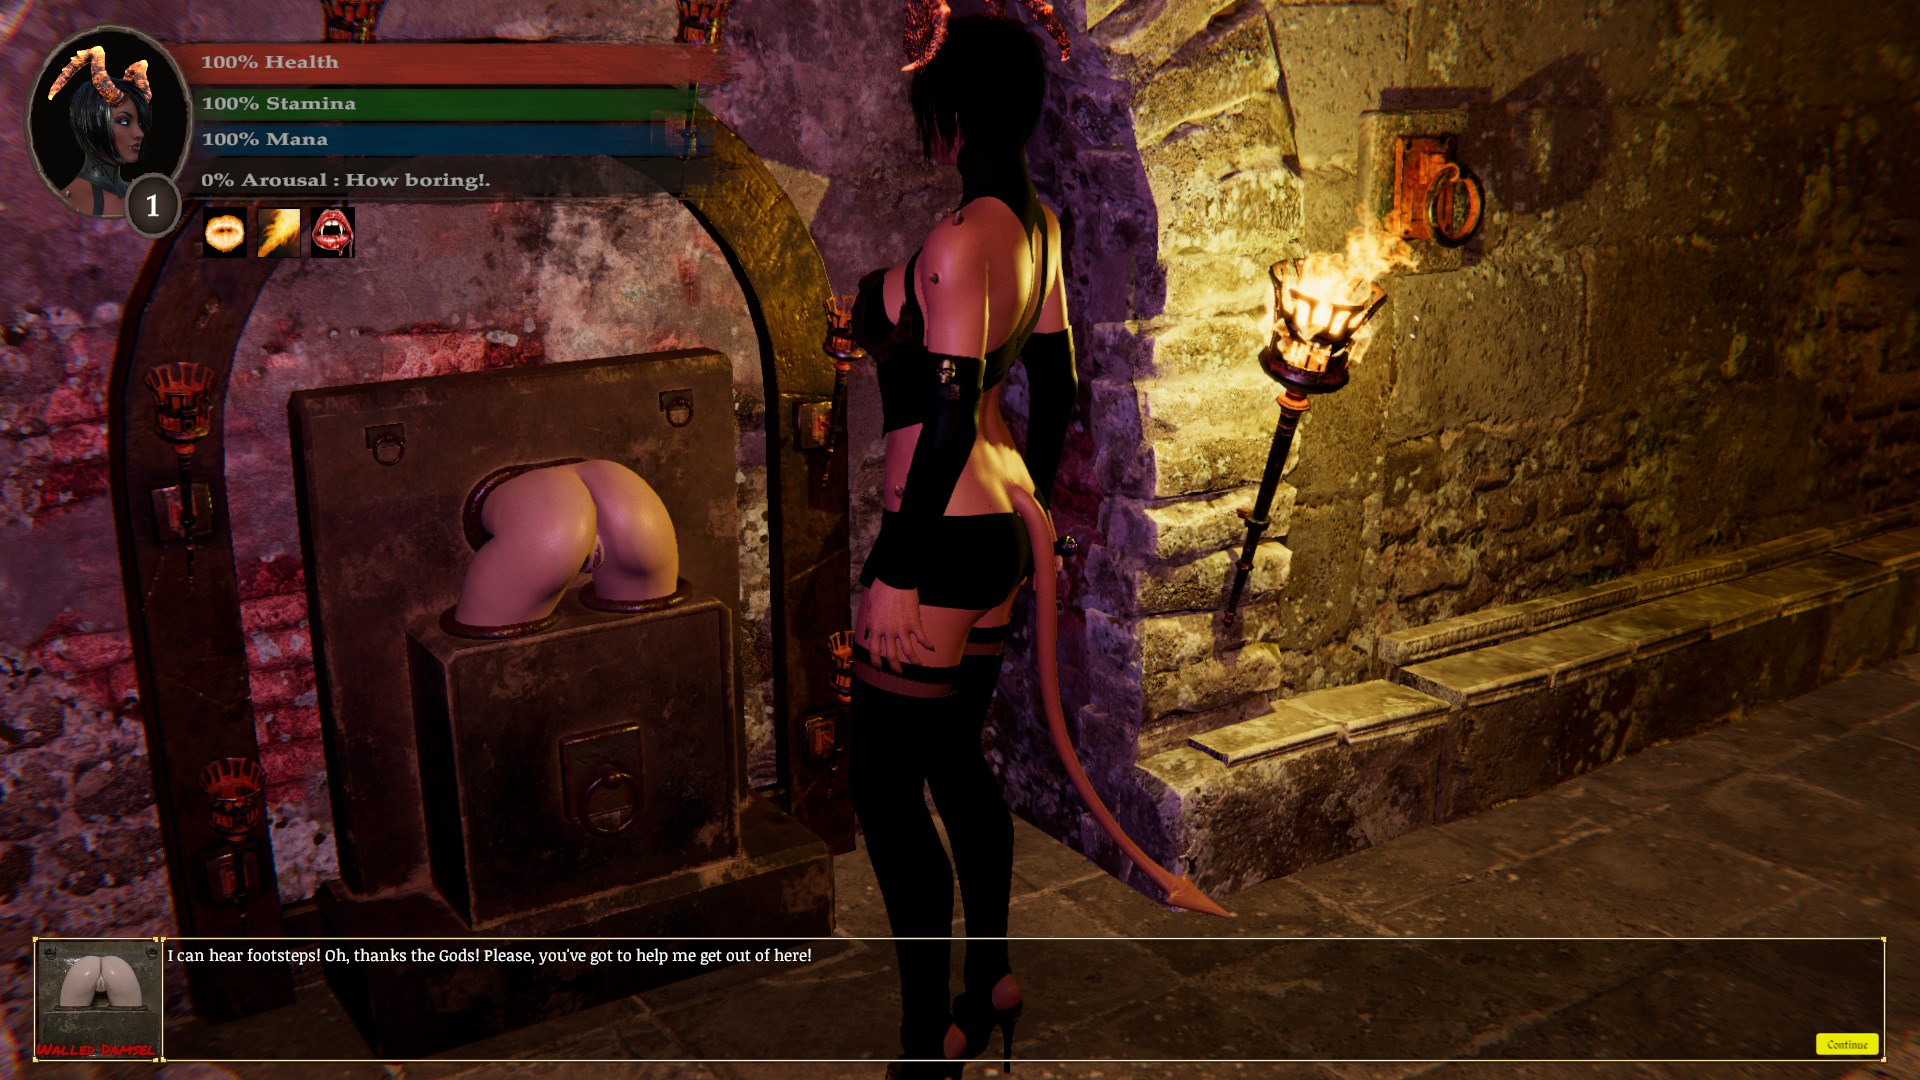 Sadistica's Revenge screenshot 2